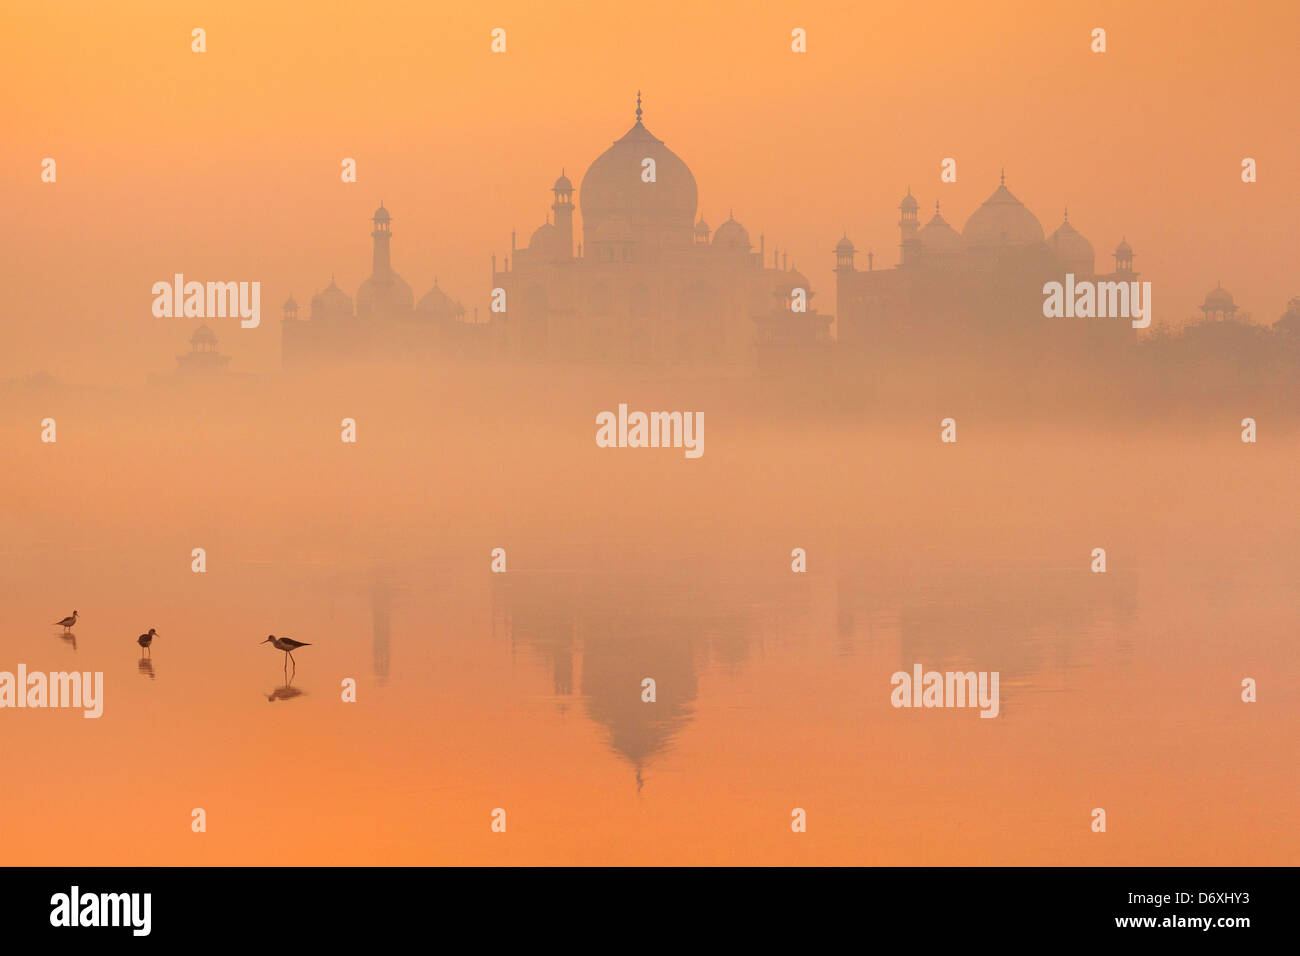 Skyline of Taj Mahal,  Agra, Uttar Pradesh, India Stock Photo